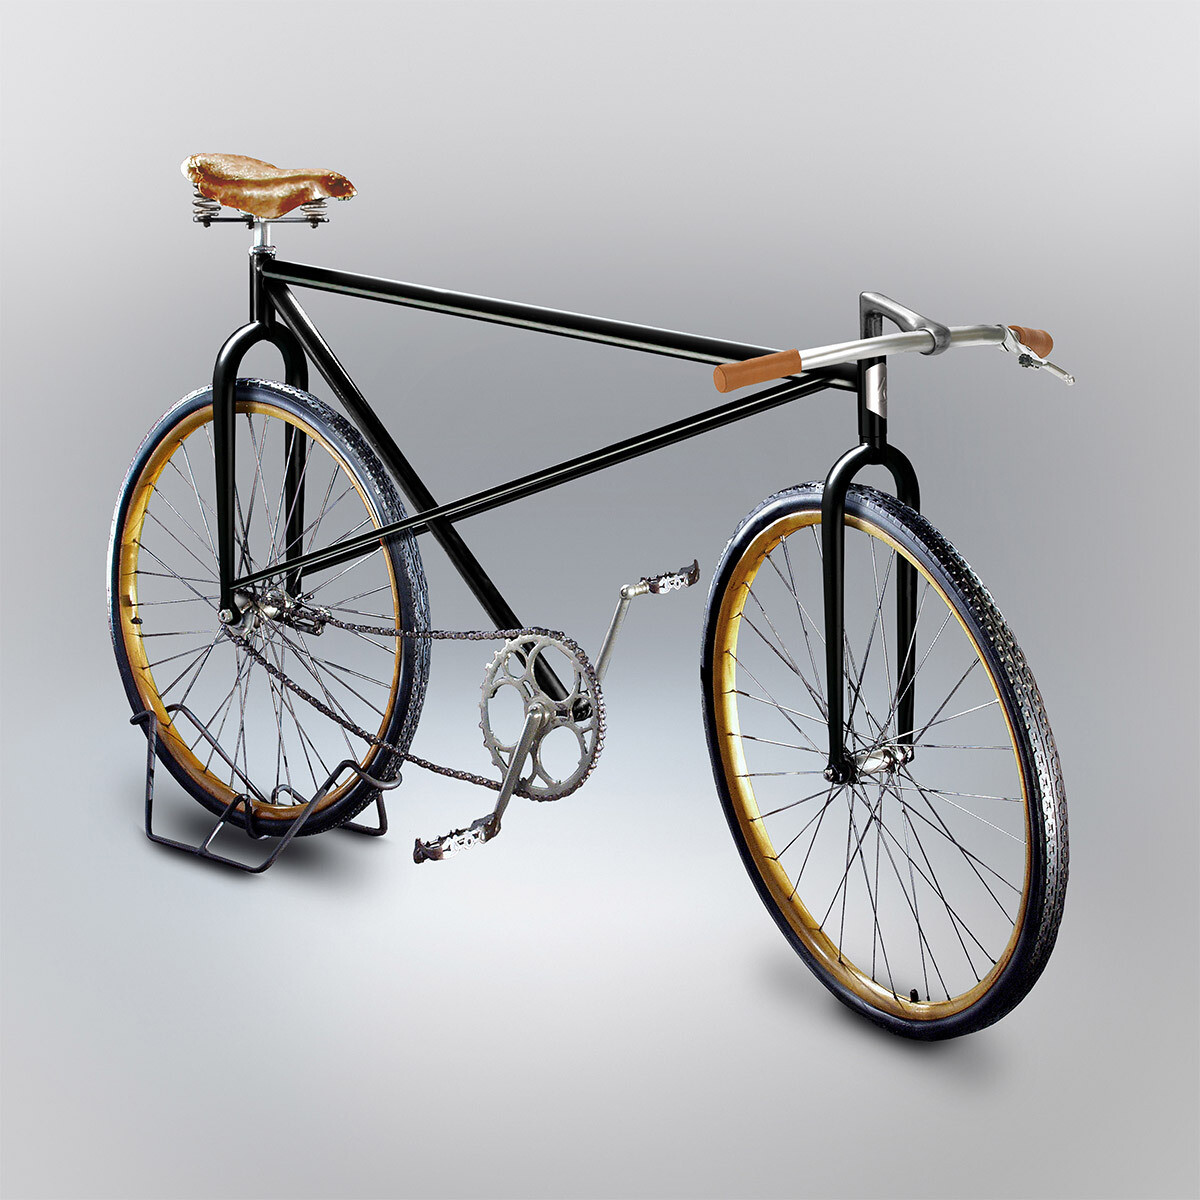 Bicycles Made Based on People's Attempts to Draw Them From Memory